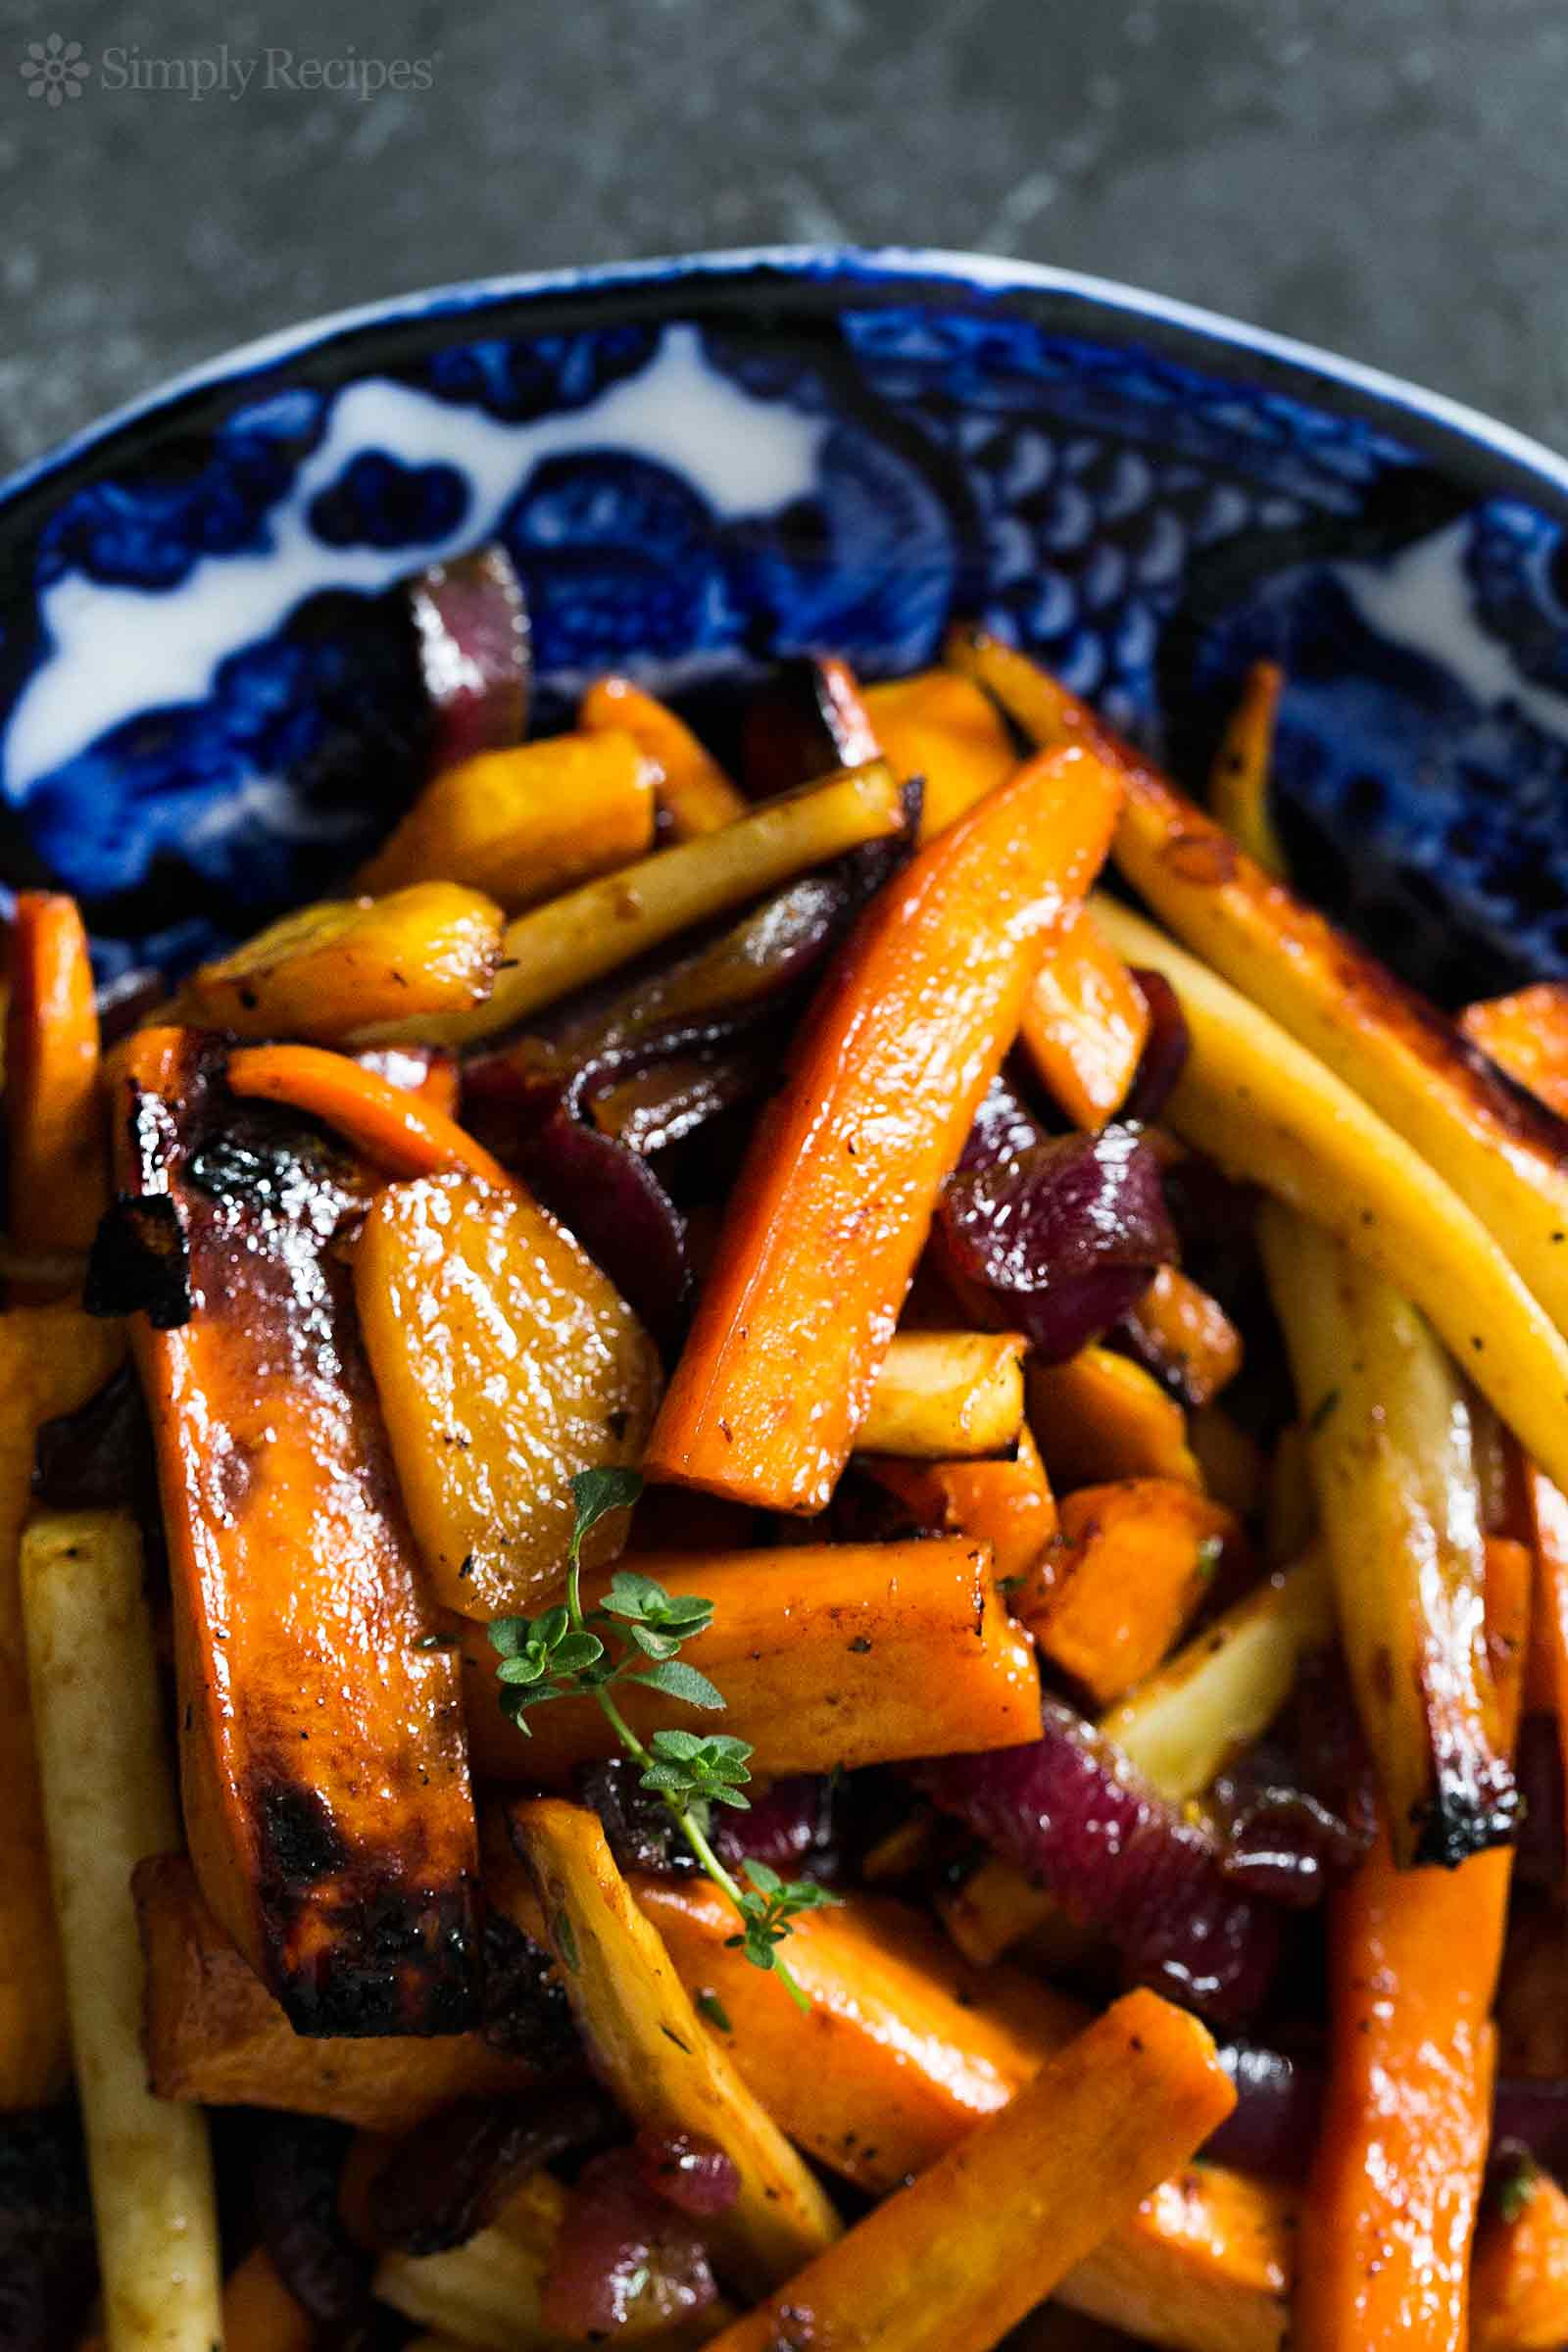 Roasted Fall Root Vegetables  Cider Roasted Root Ve ables